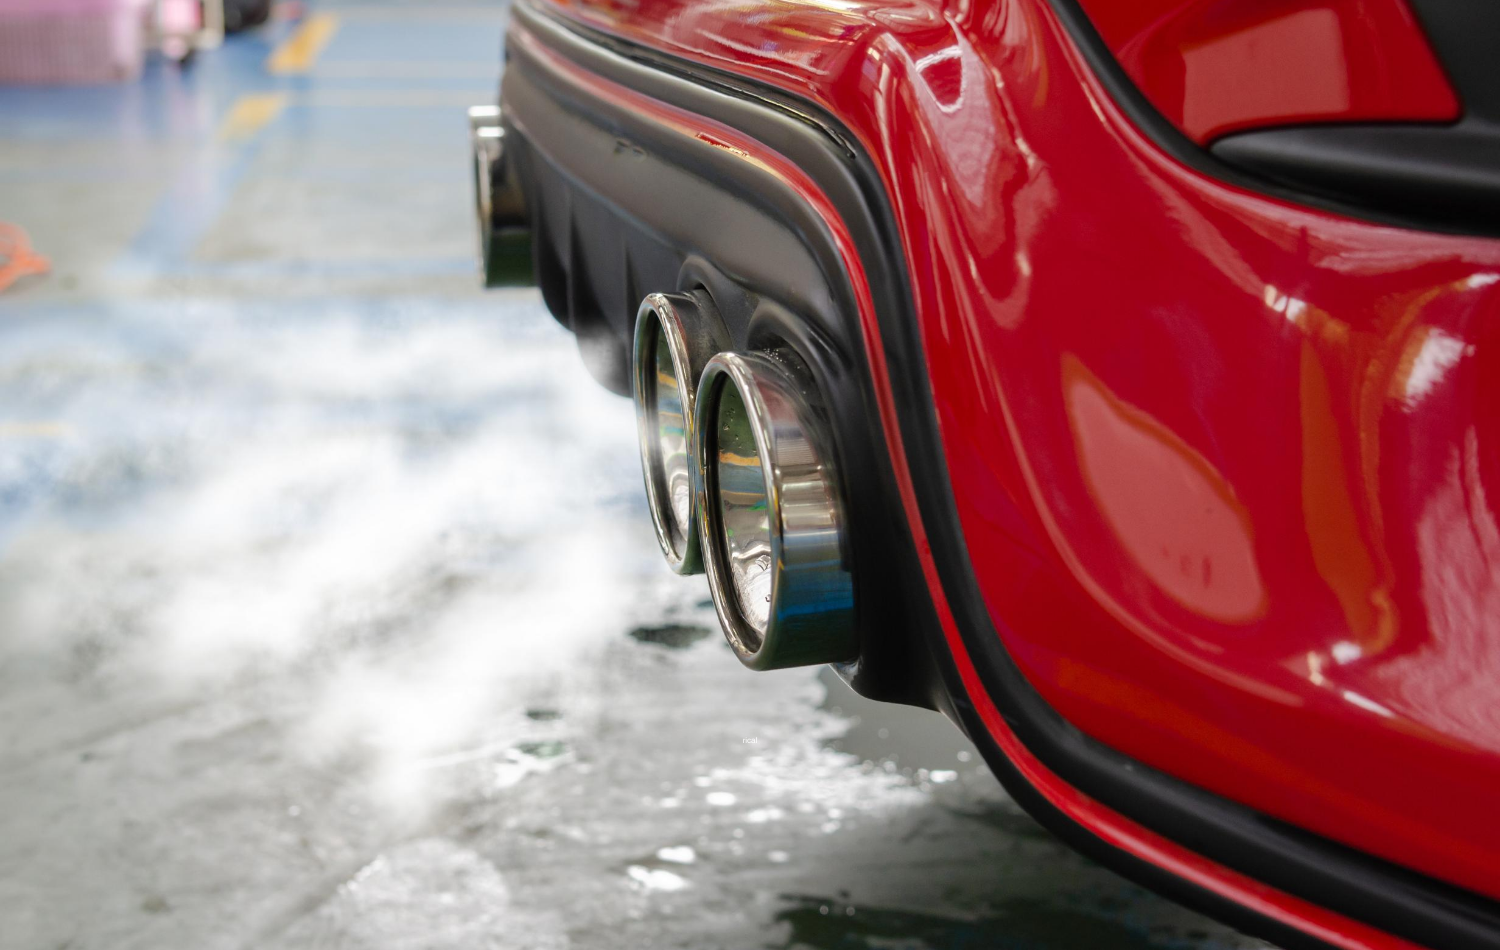 The Hidden Meanings Behind Vehicle Exhaust Colors